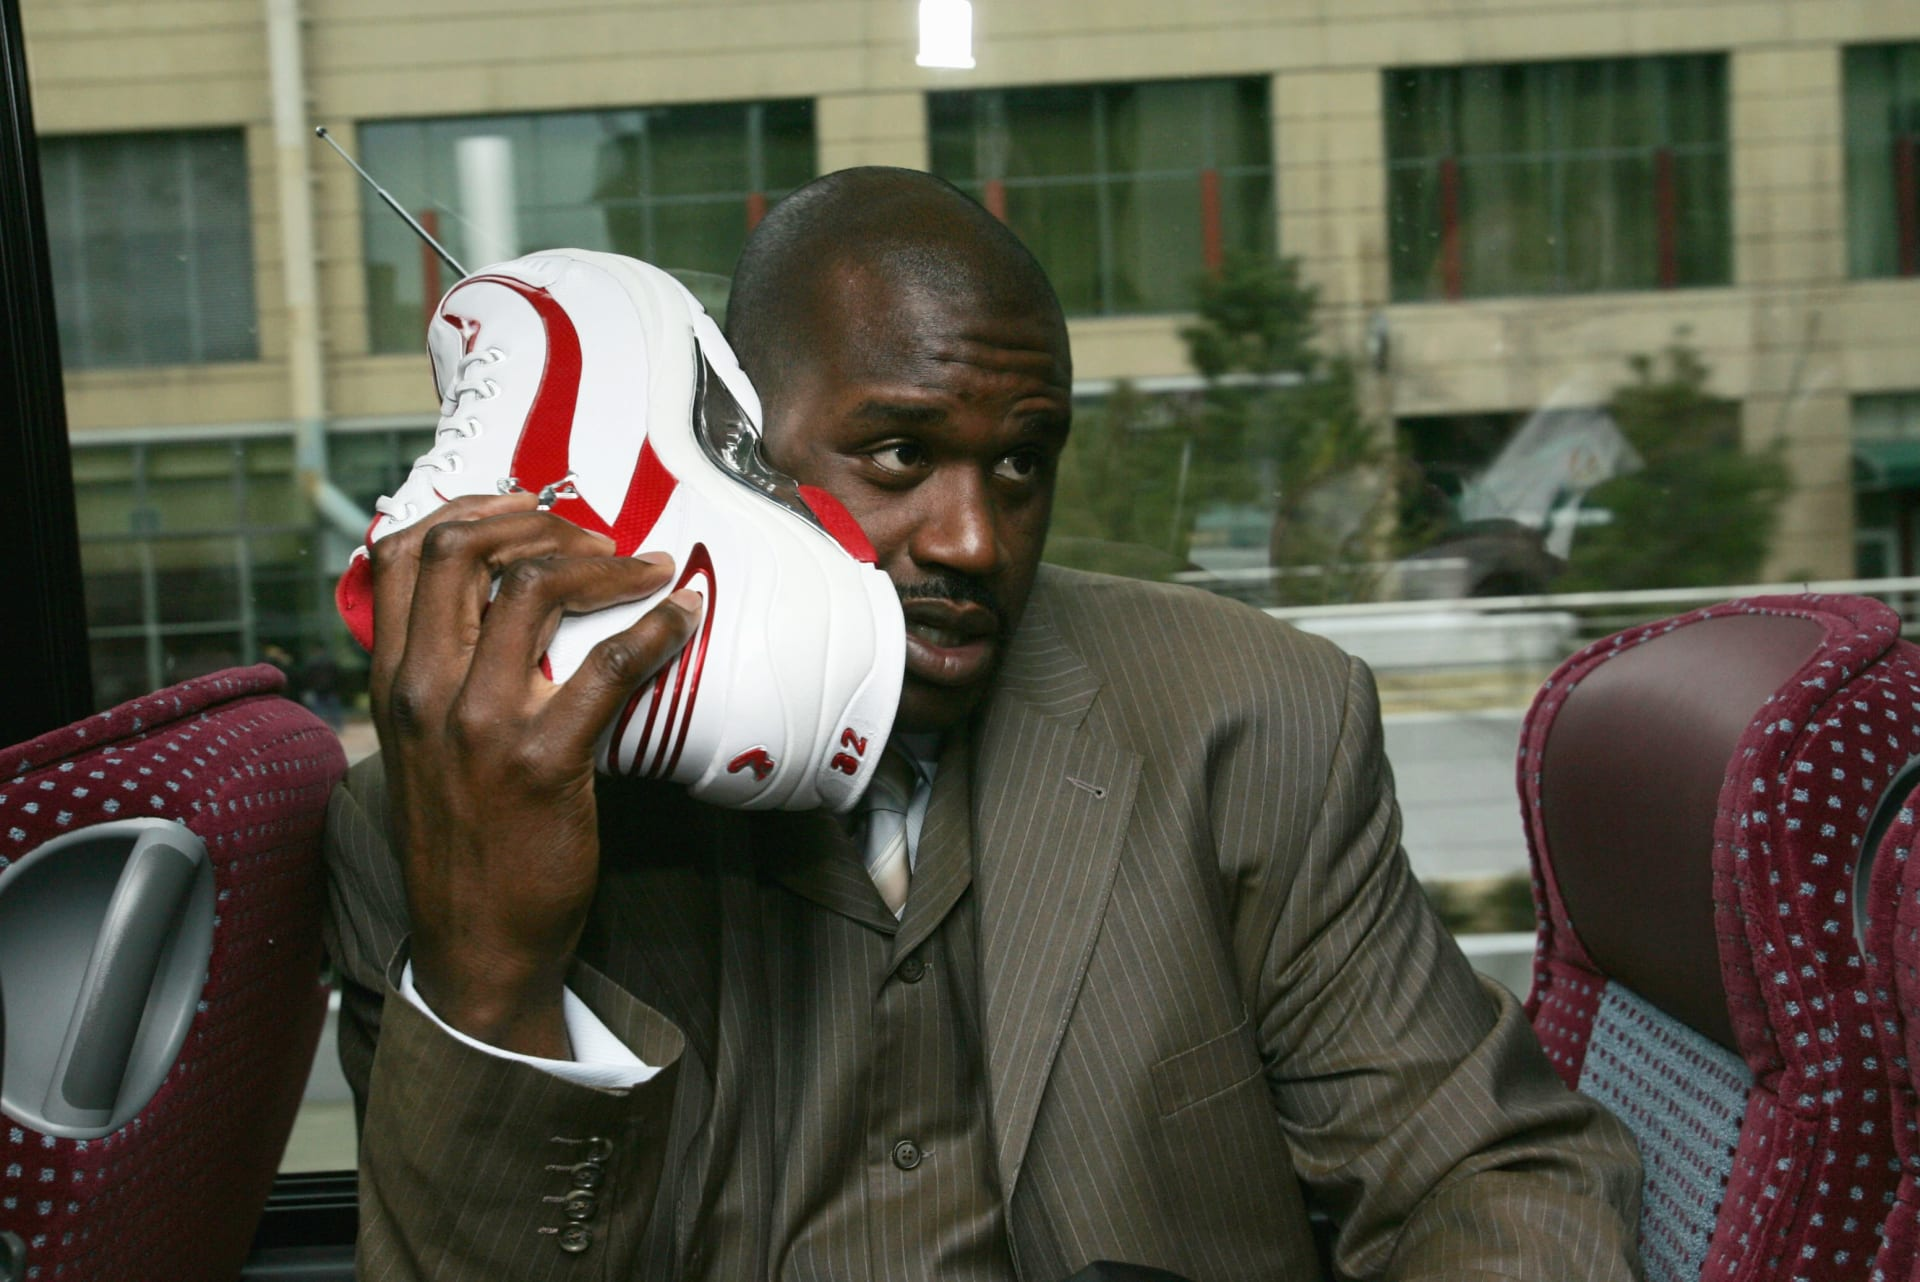 6 Times Sneakers Upstaged the NBA All-Star Game  eb1c5dba5